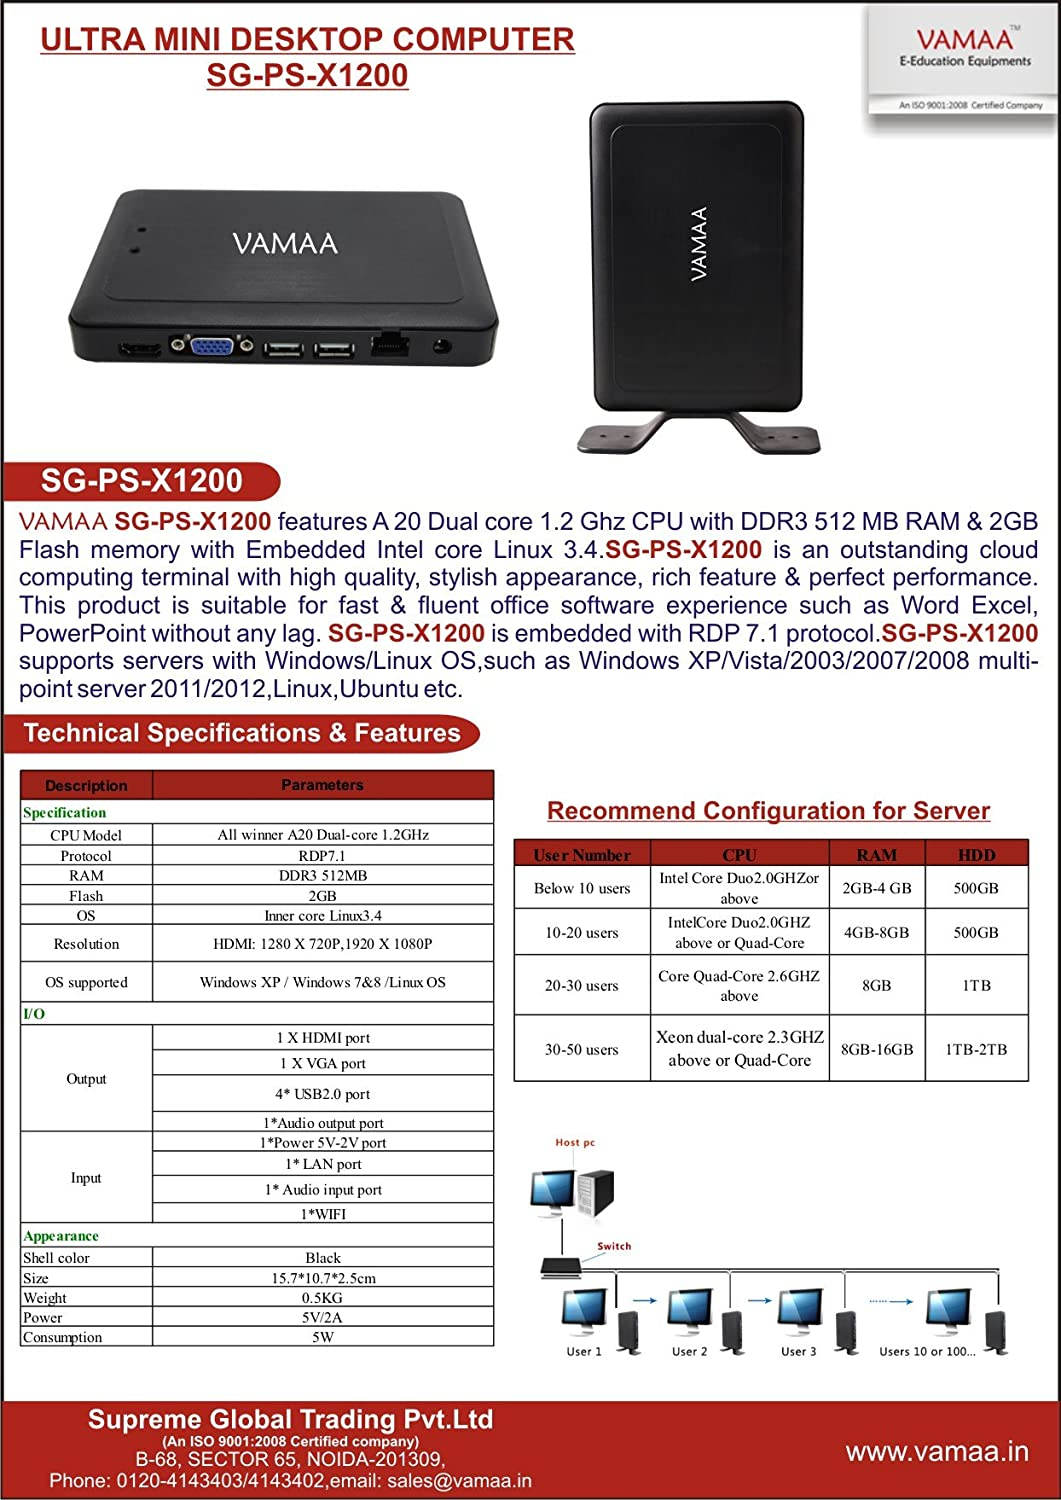 Vamaa Ultra Mini Desktop Computer Thin Client Sg Ps X1200 With 12 Parts Diagram For Kids Ghz Processor 512 Mb Ram 2 Gb Flash Full Hdmi Support Pc Sharing Splitting Yes